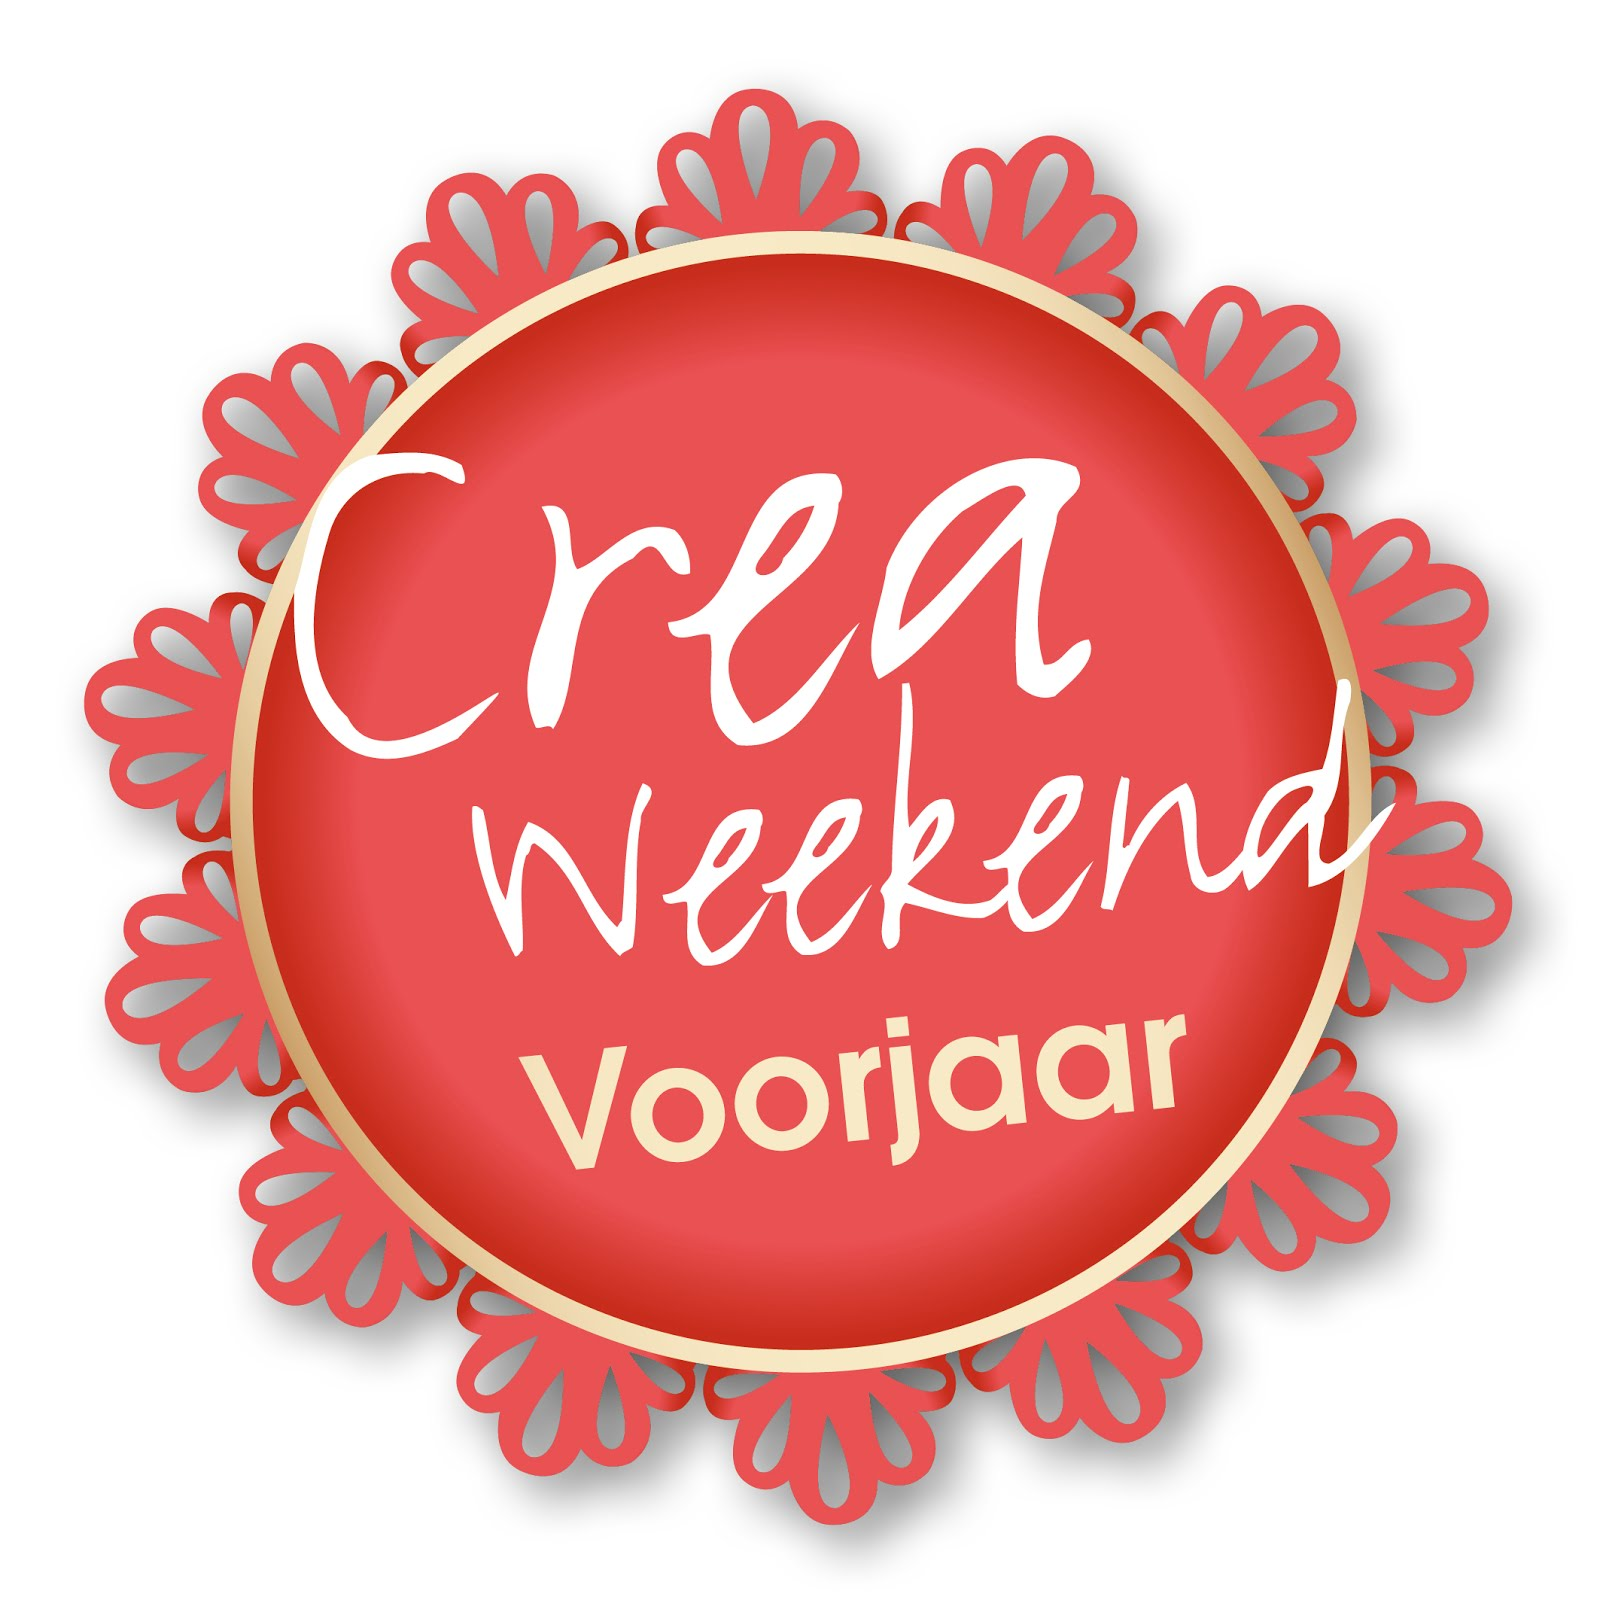 Crea-weekend